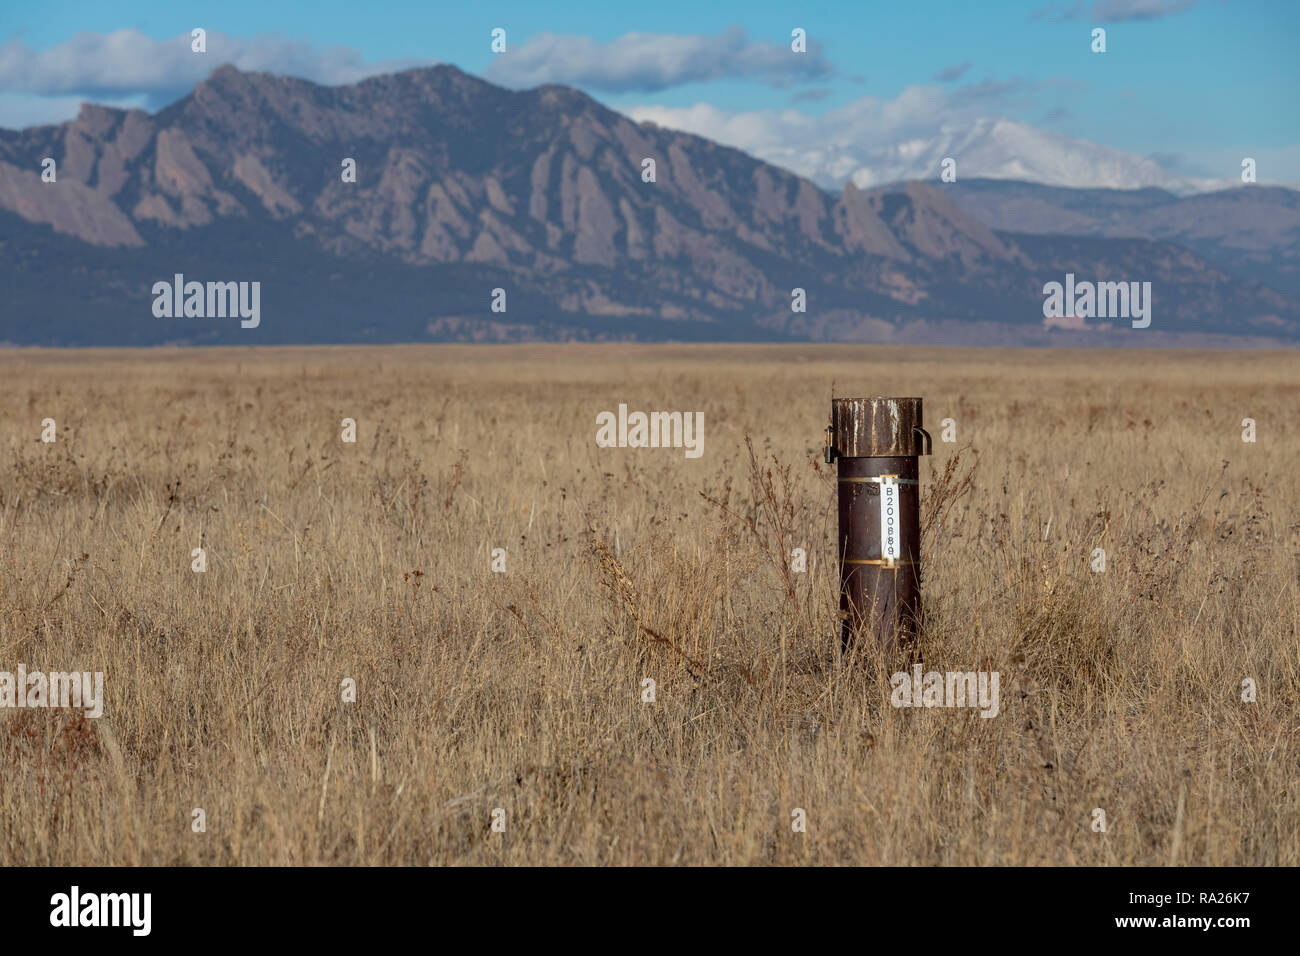 Denver, Colorado - Wells in Rocky Flats National Wildlife Refuge are used to determine whether plutonium and other pollutants have contaminated the gr - Stock Image